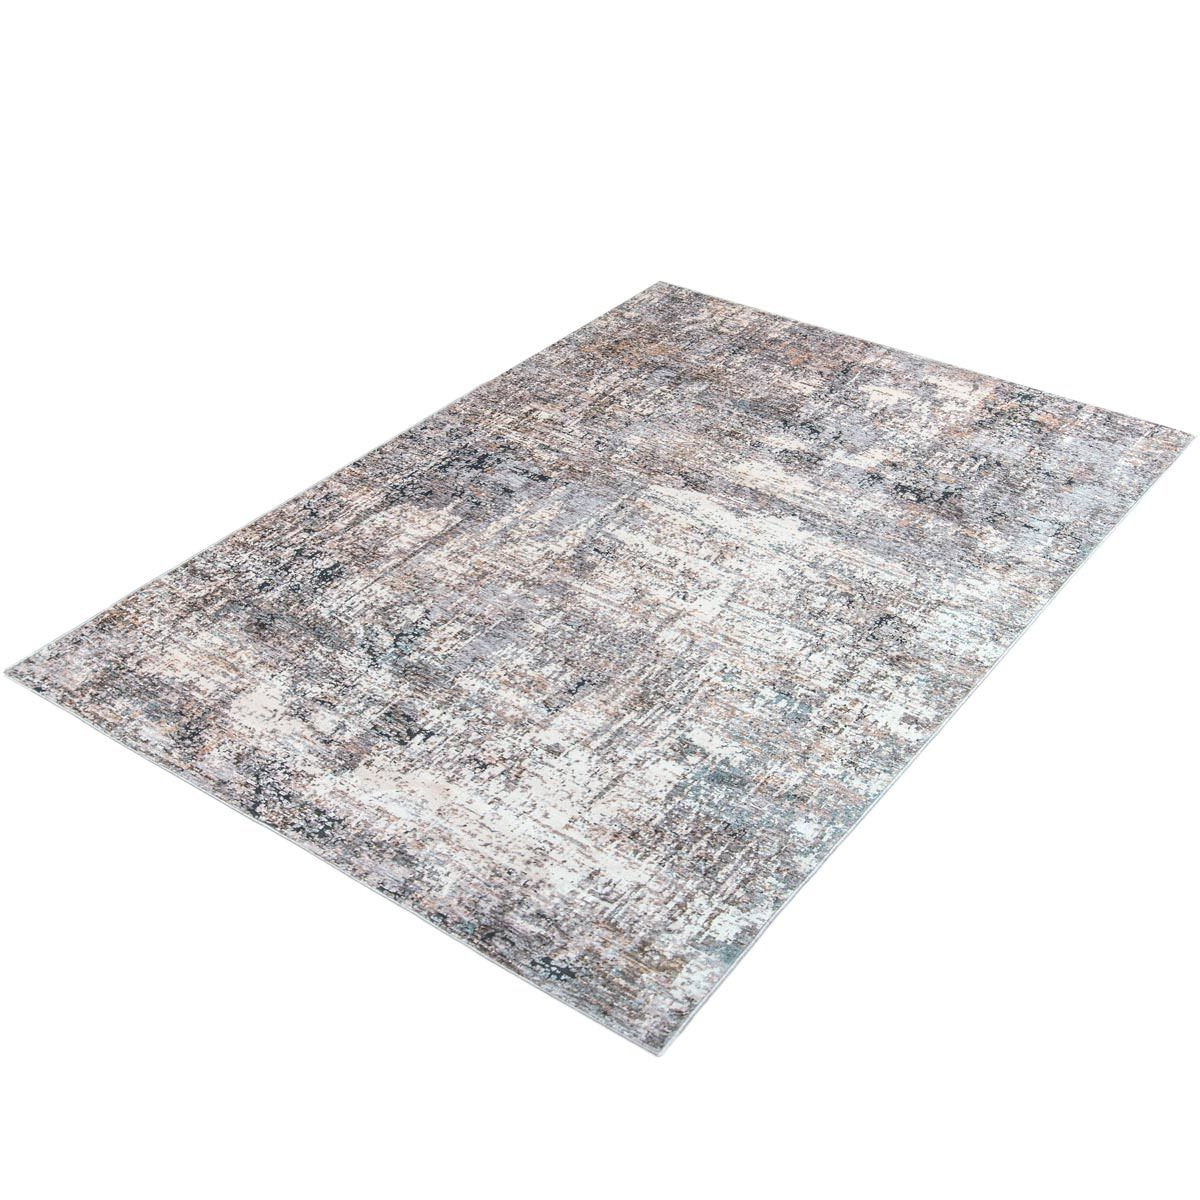 Miami Rug 04 Green/Blue/Beige 7